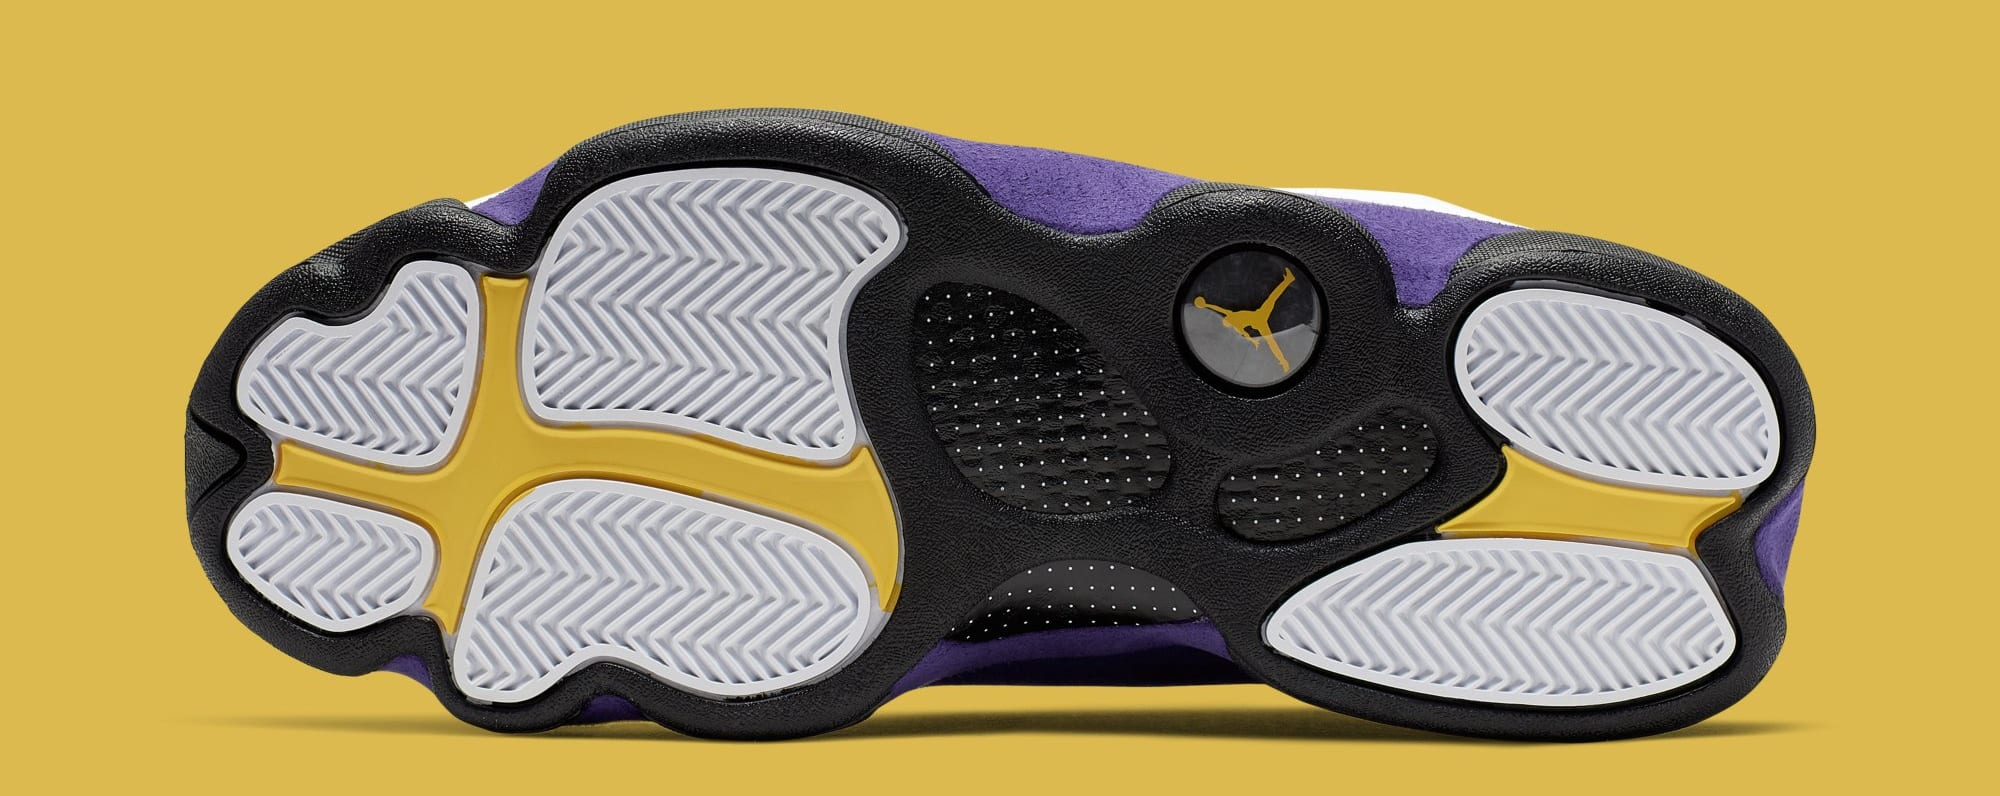 Air Jordan 13 'Lakers' White/Black/Court Purple/University Gold 414571-105 (Sole)